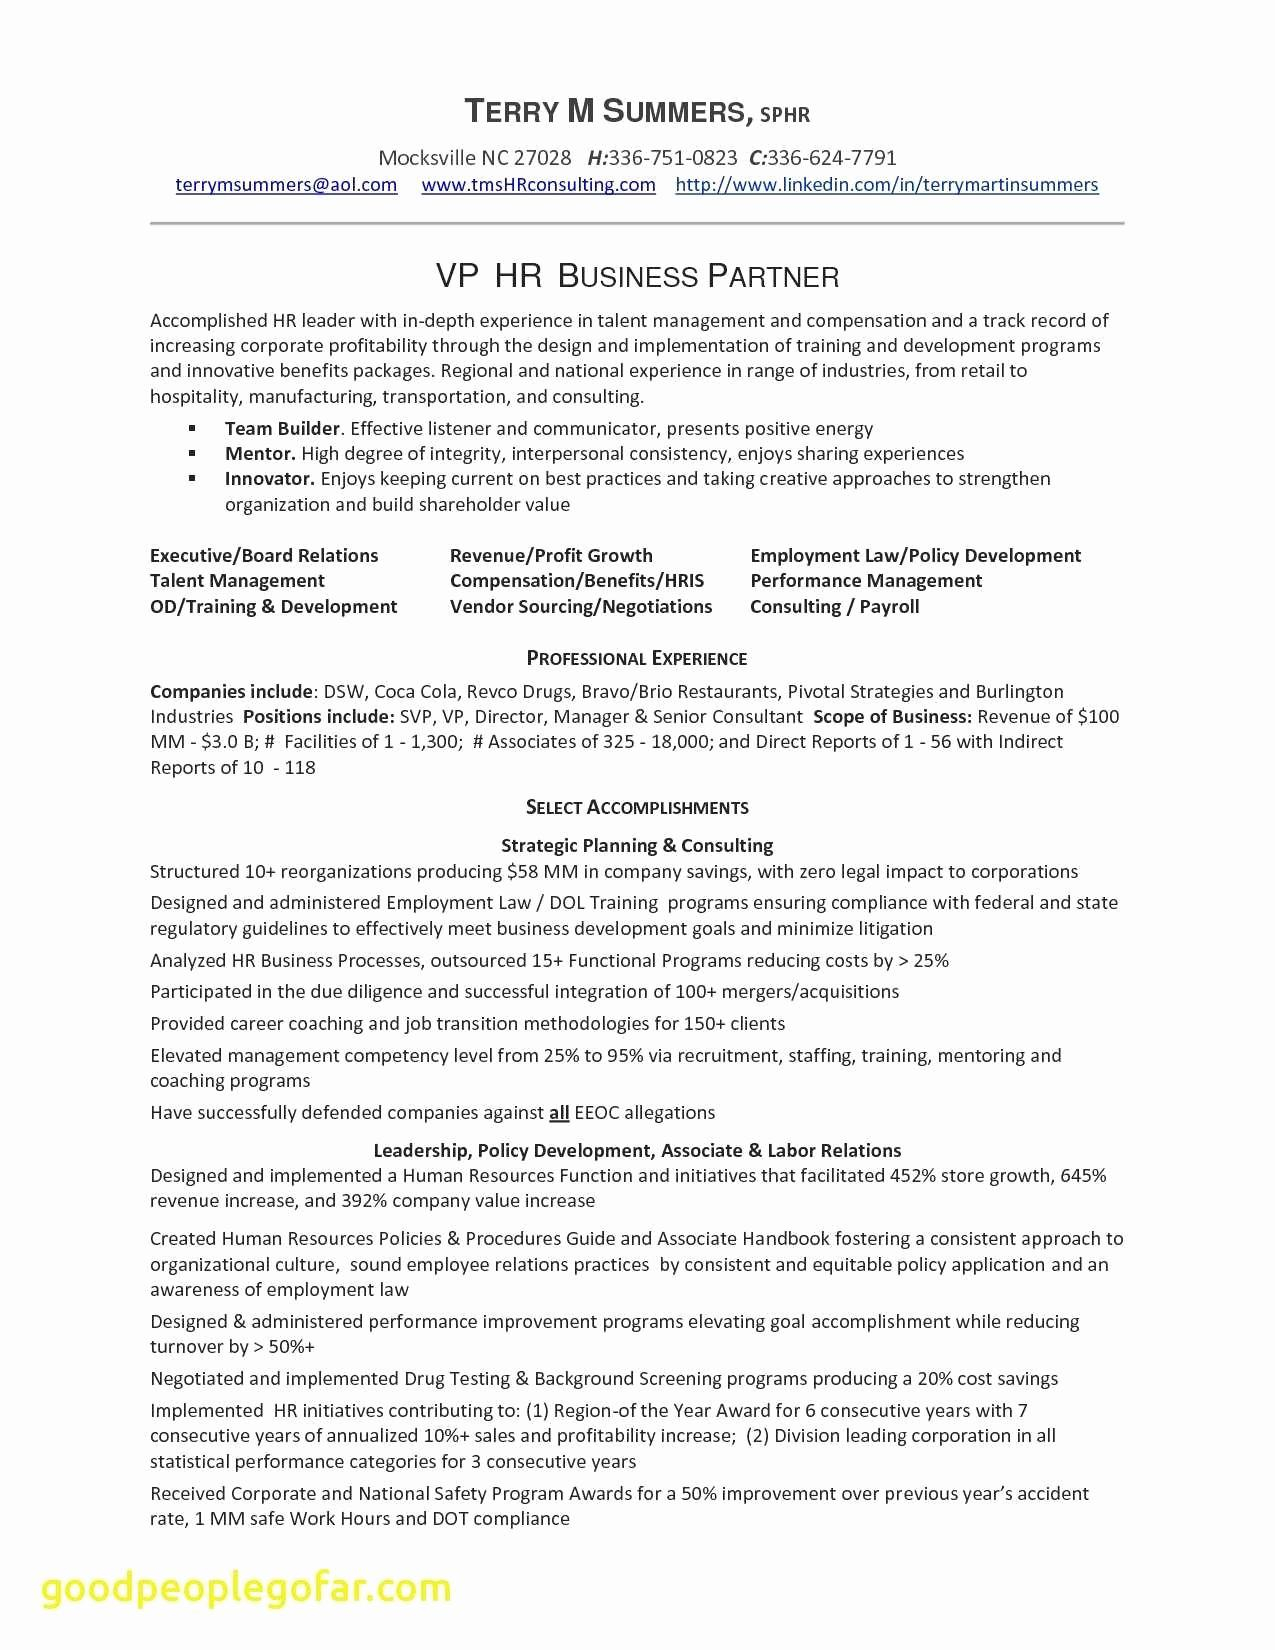 Legal assistant Resume Template - Legal assistant Cover Letter Fresh Job Application Letter format